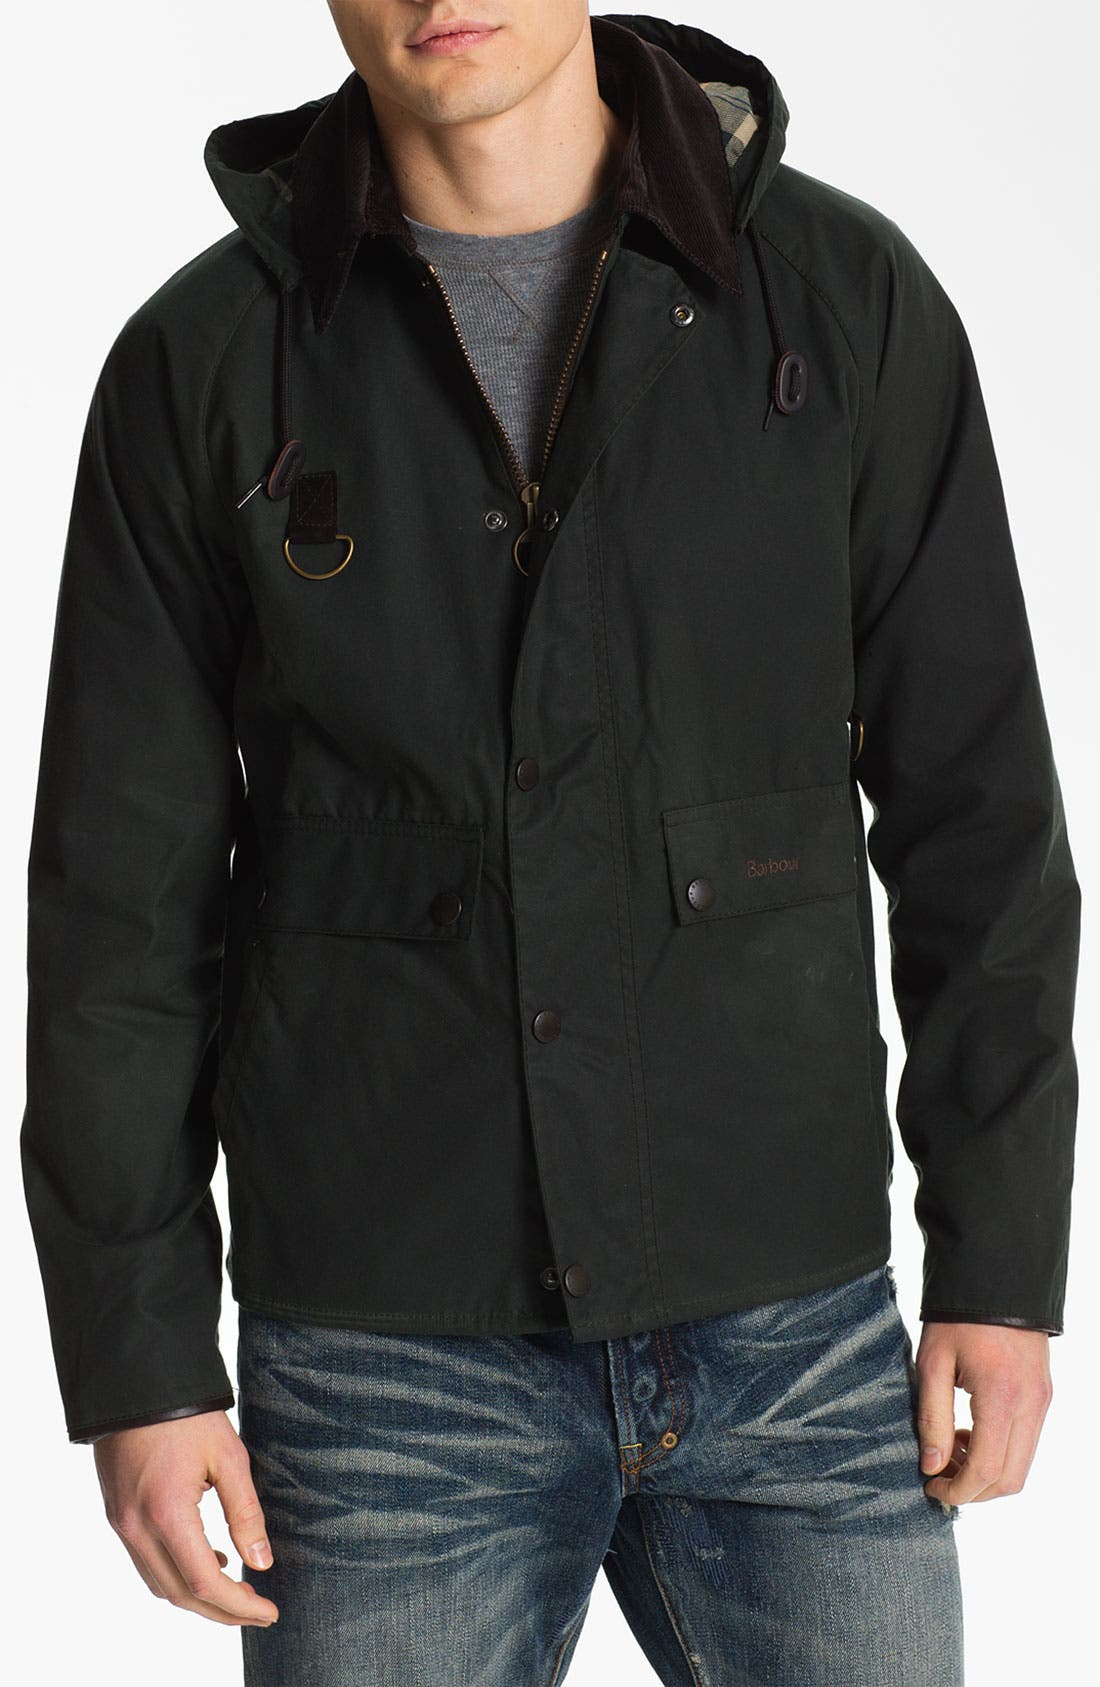 Alternate Image 1 Selected - Barbour 'Standen' Hooded Jacket